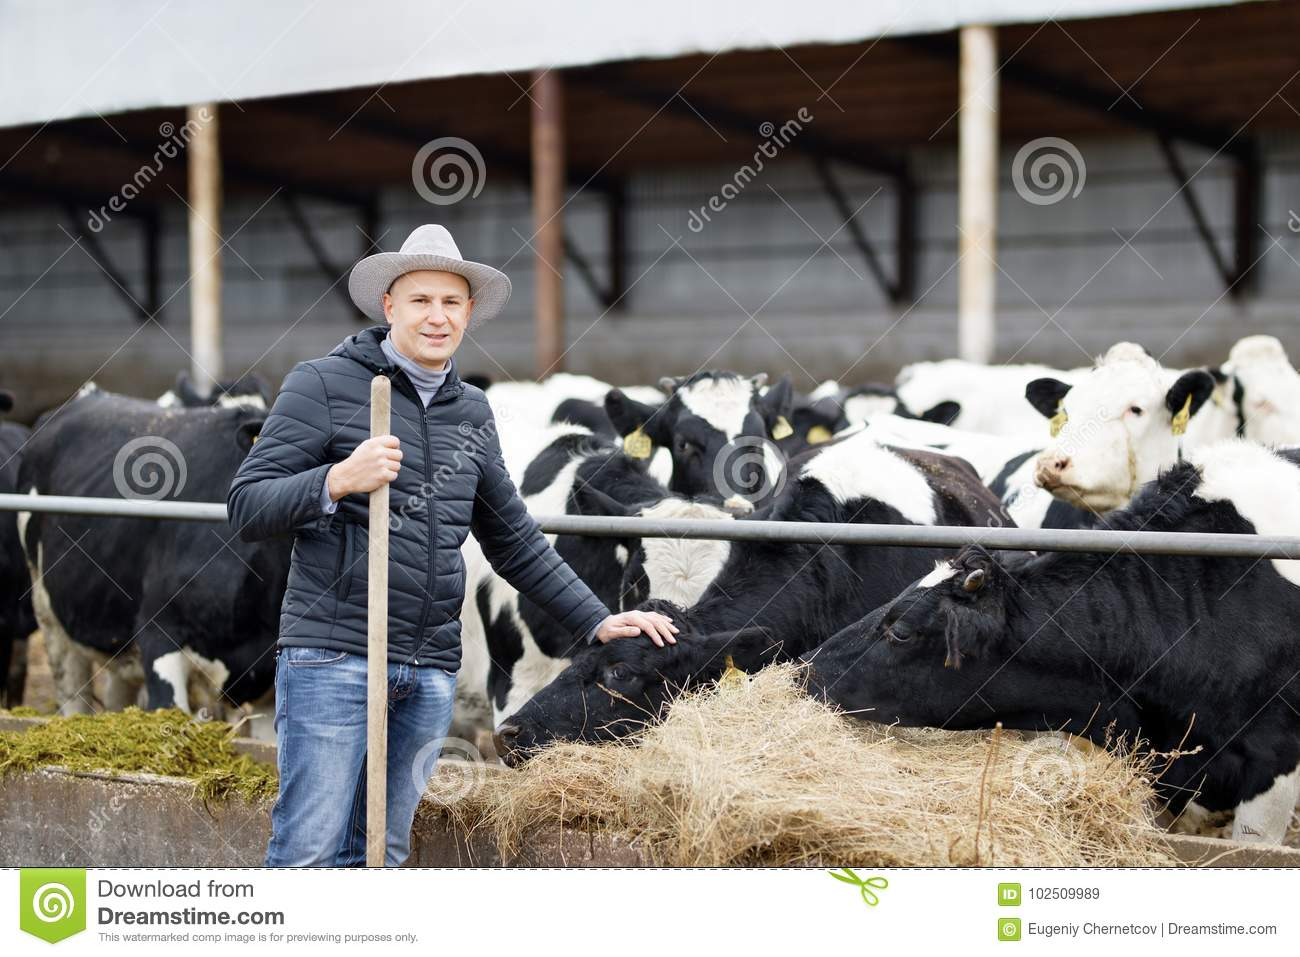 Farmer working on farm with dairy cows